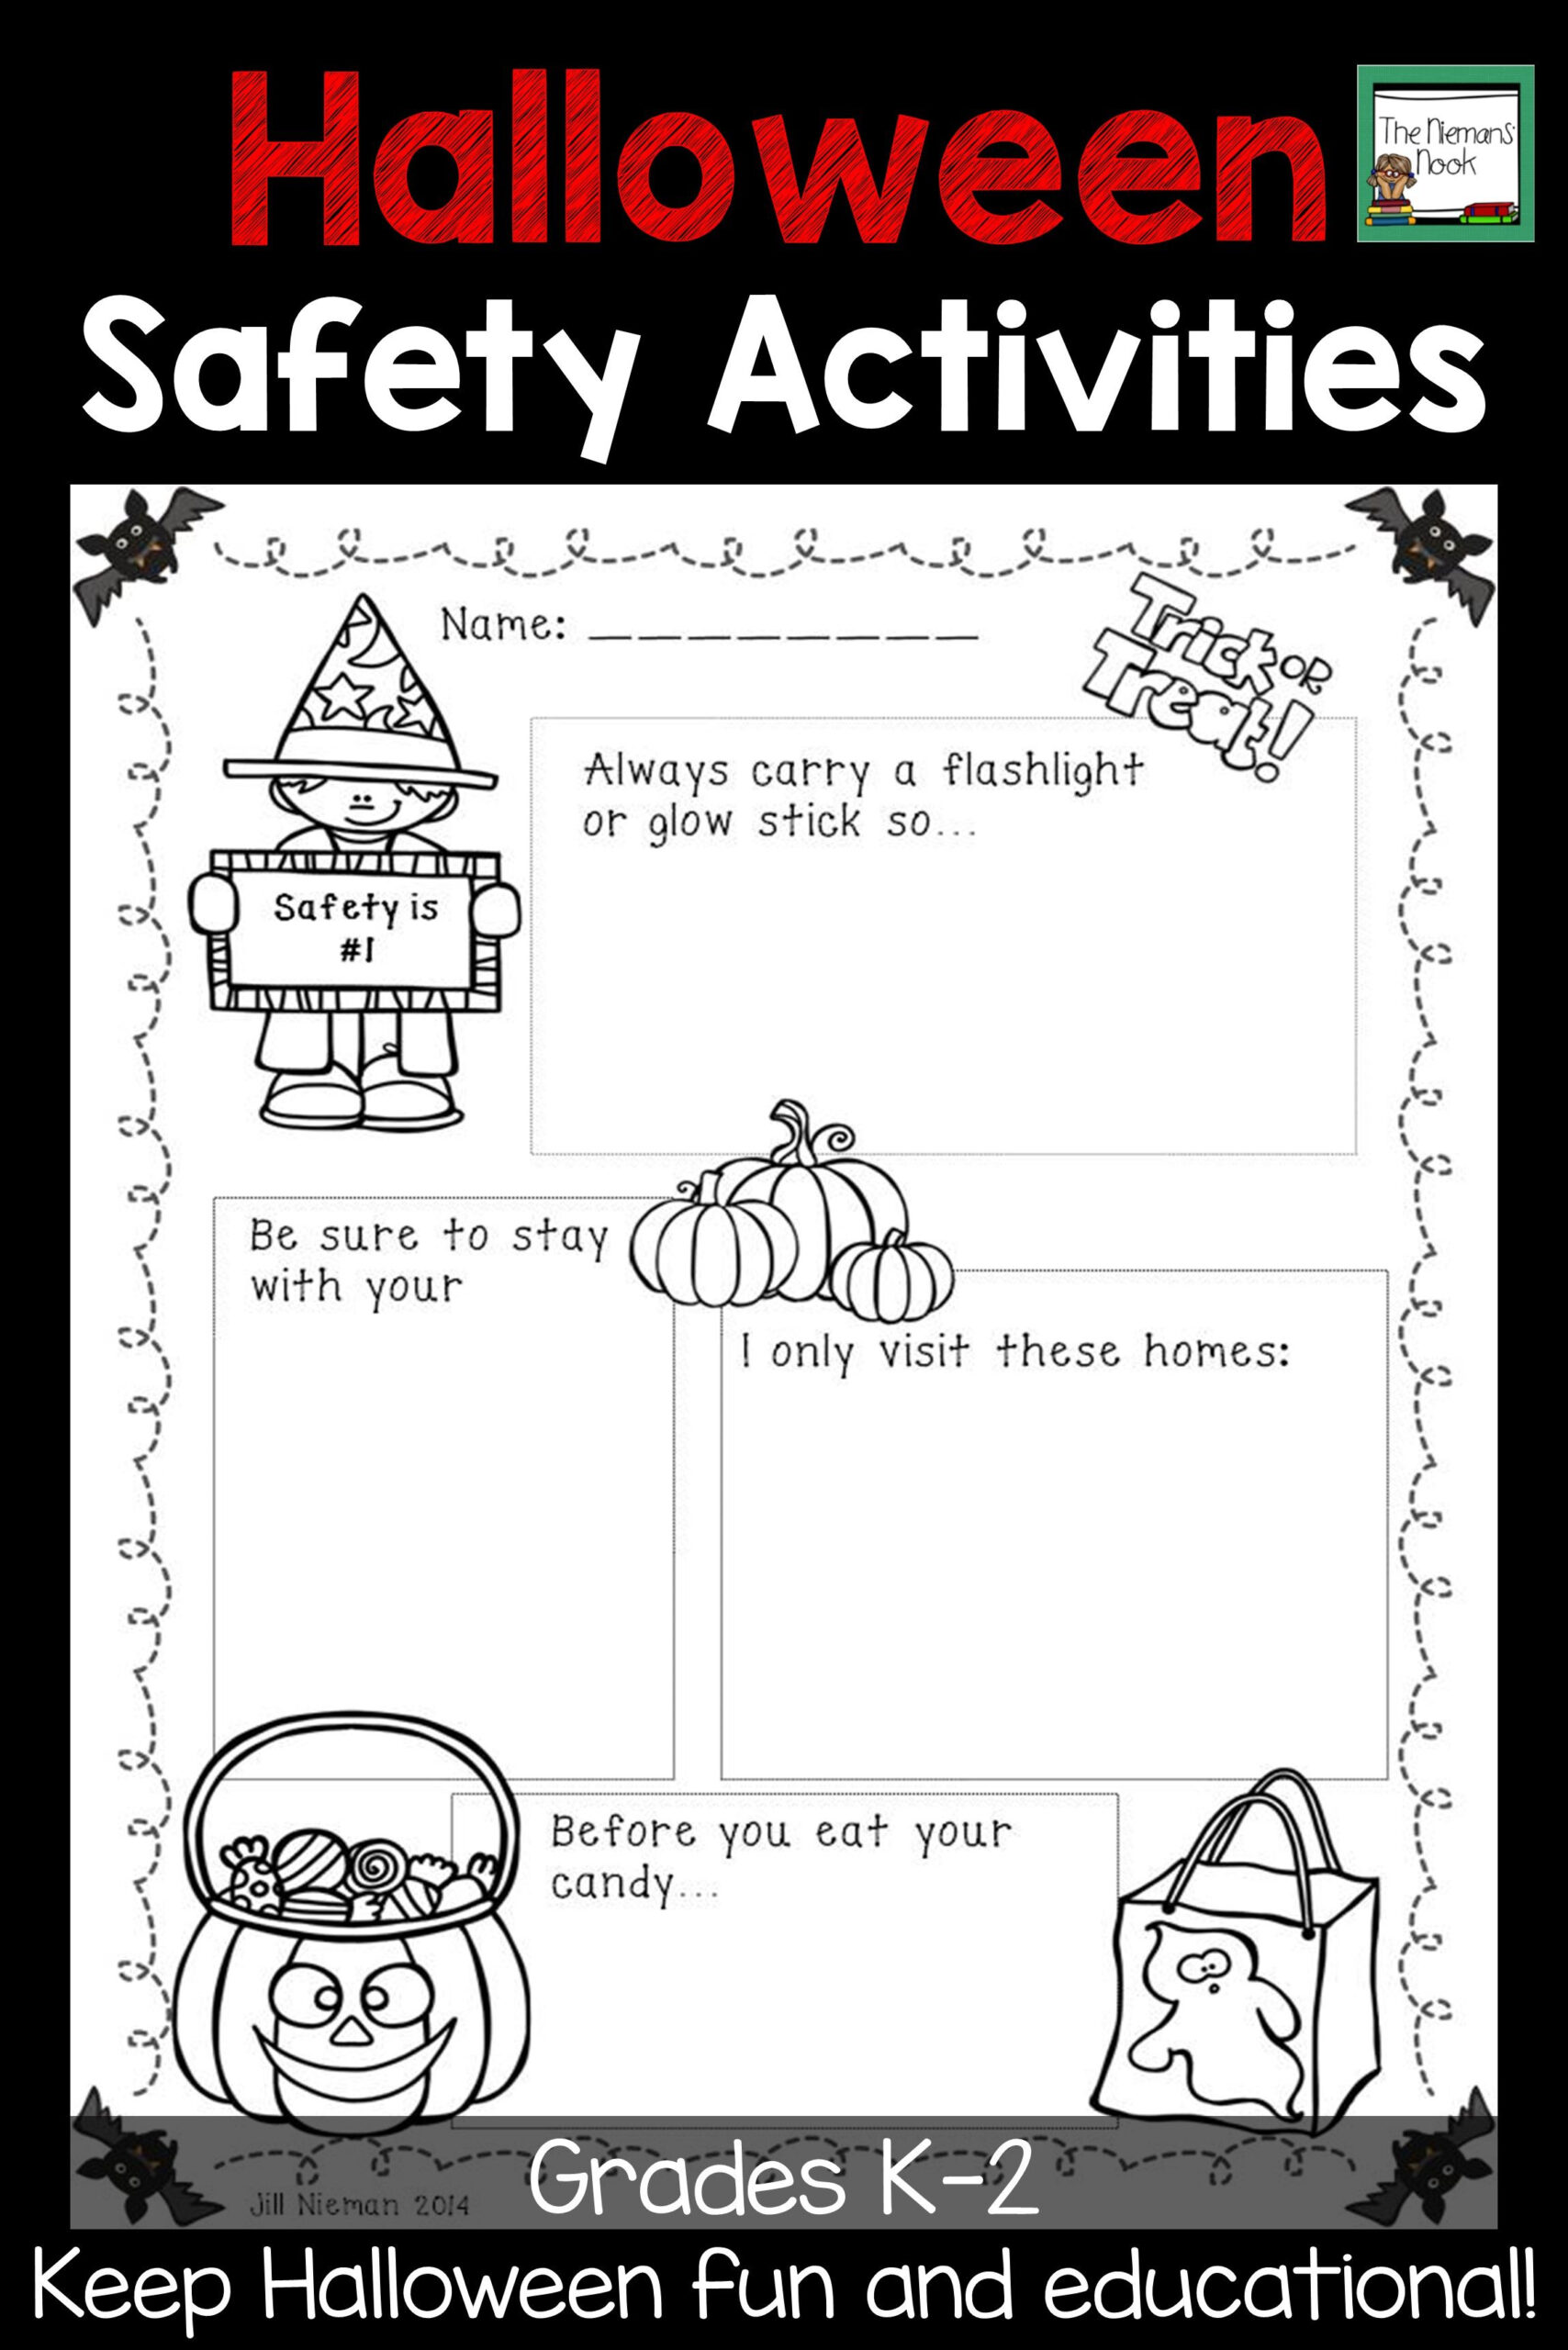 Your Students Will Love Learning About Halloween Safety With